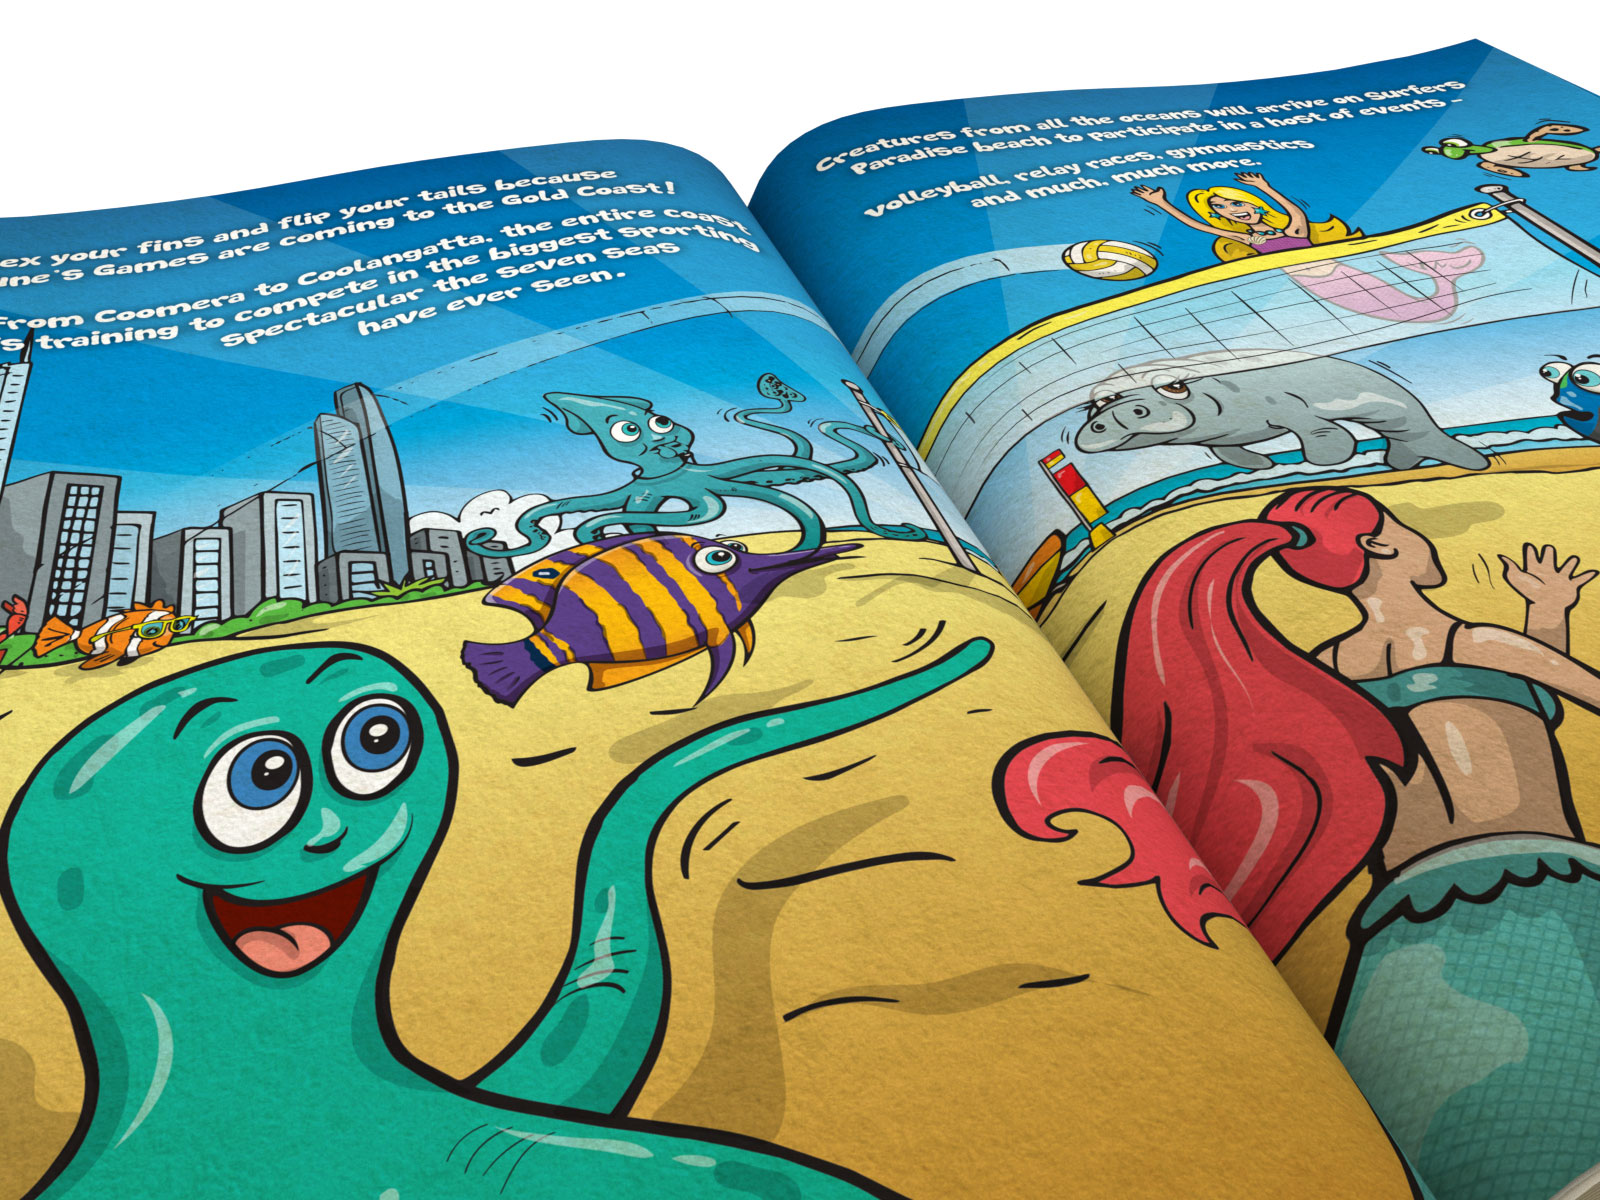 Colourful cartoon style children's book illustrations with various interesting characters